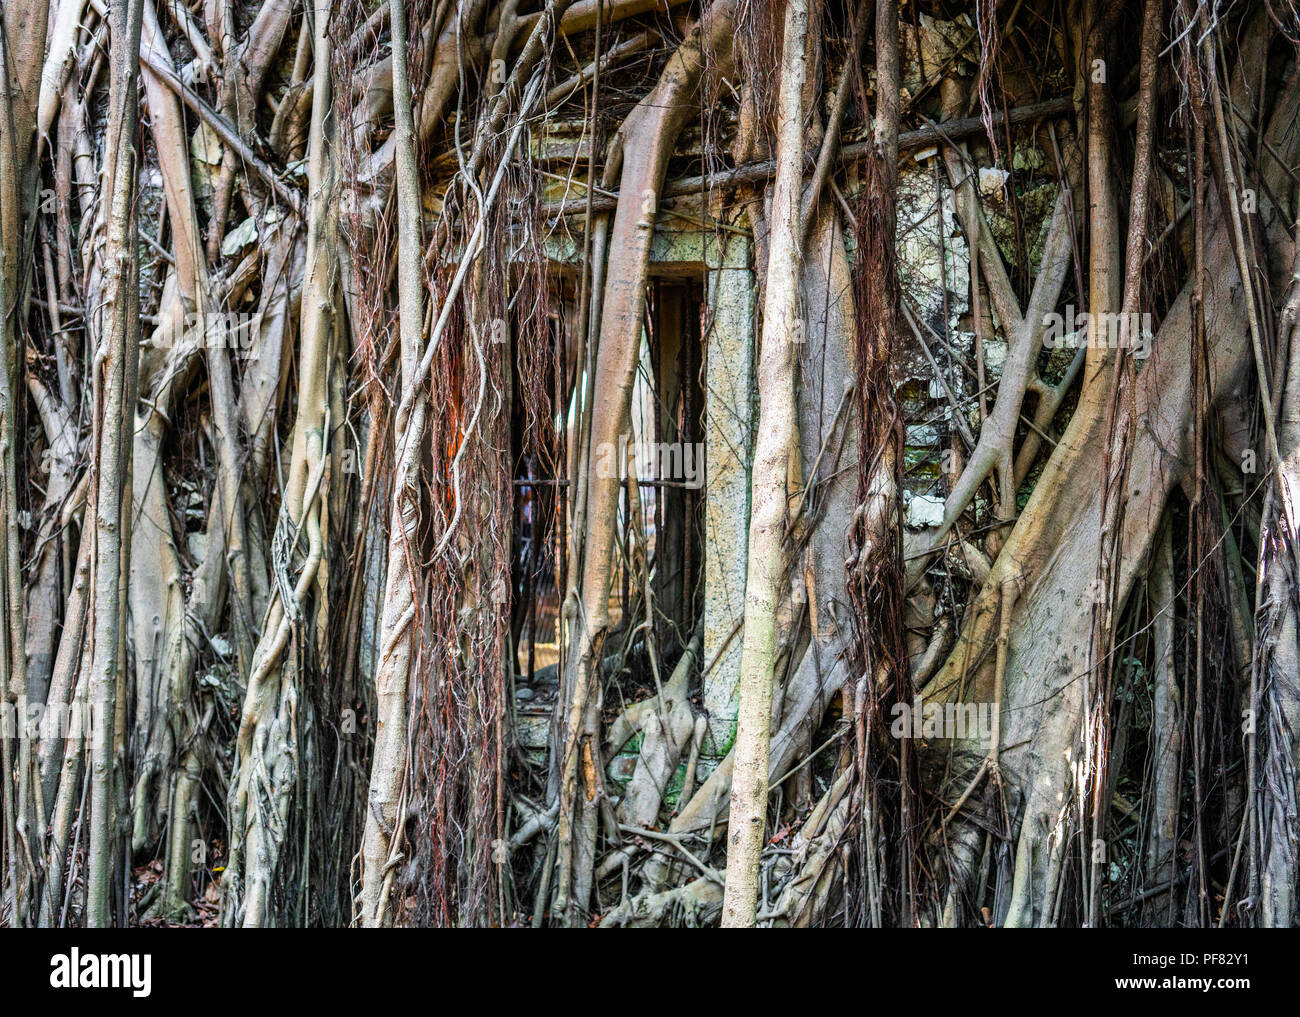 Wall and window covered by banyan tree roots in treehouse in Anping district Tainan Taiwan : post apocalytic building background concept - Stock Image